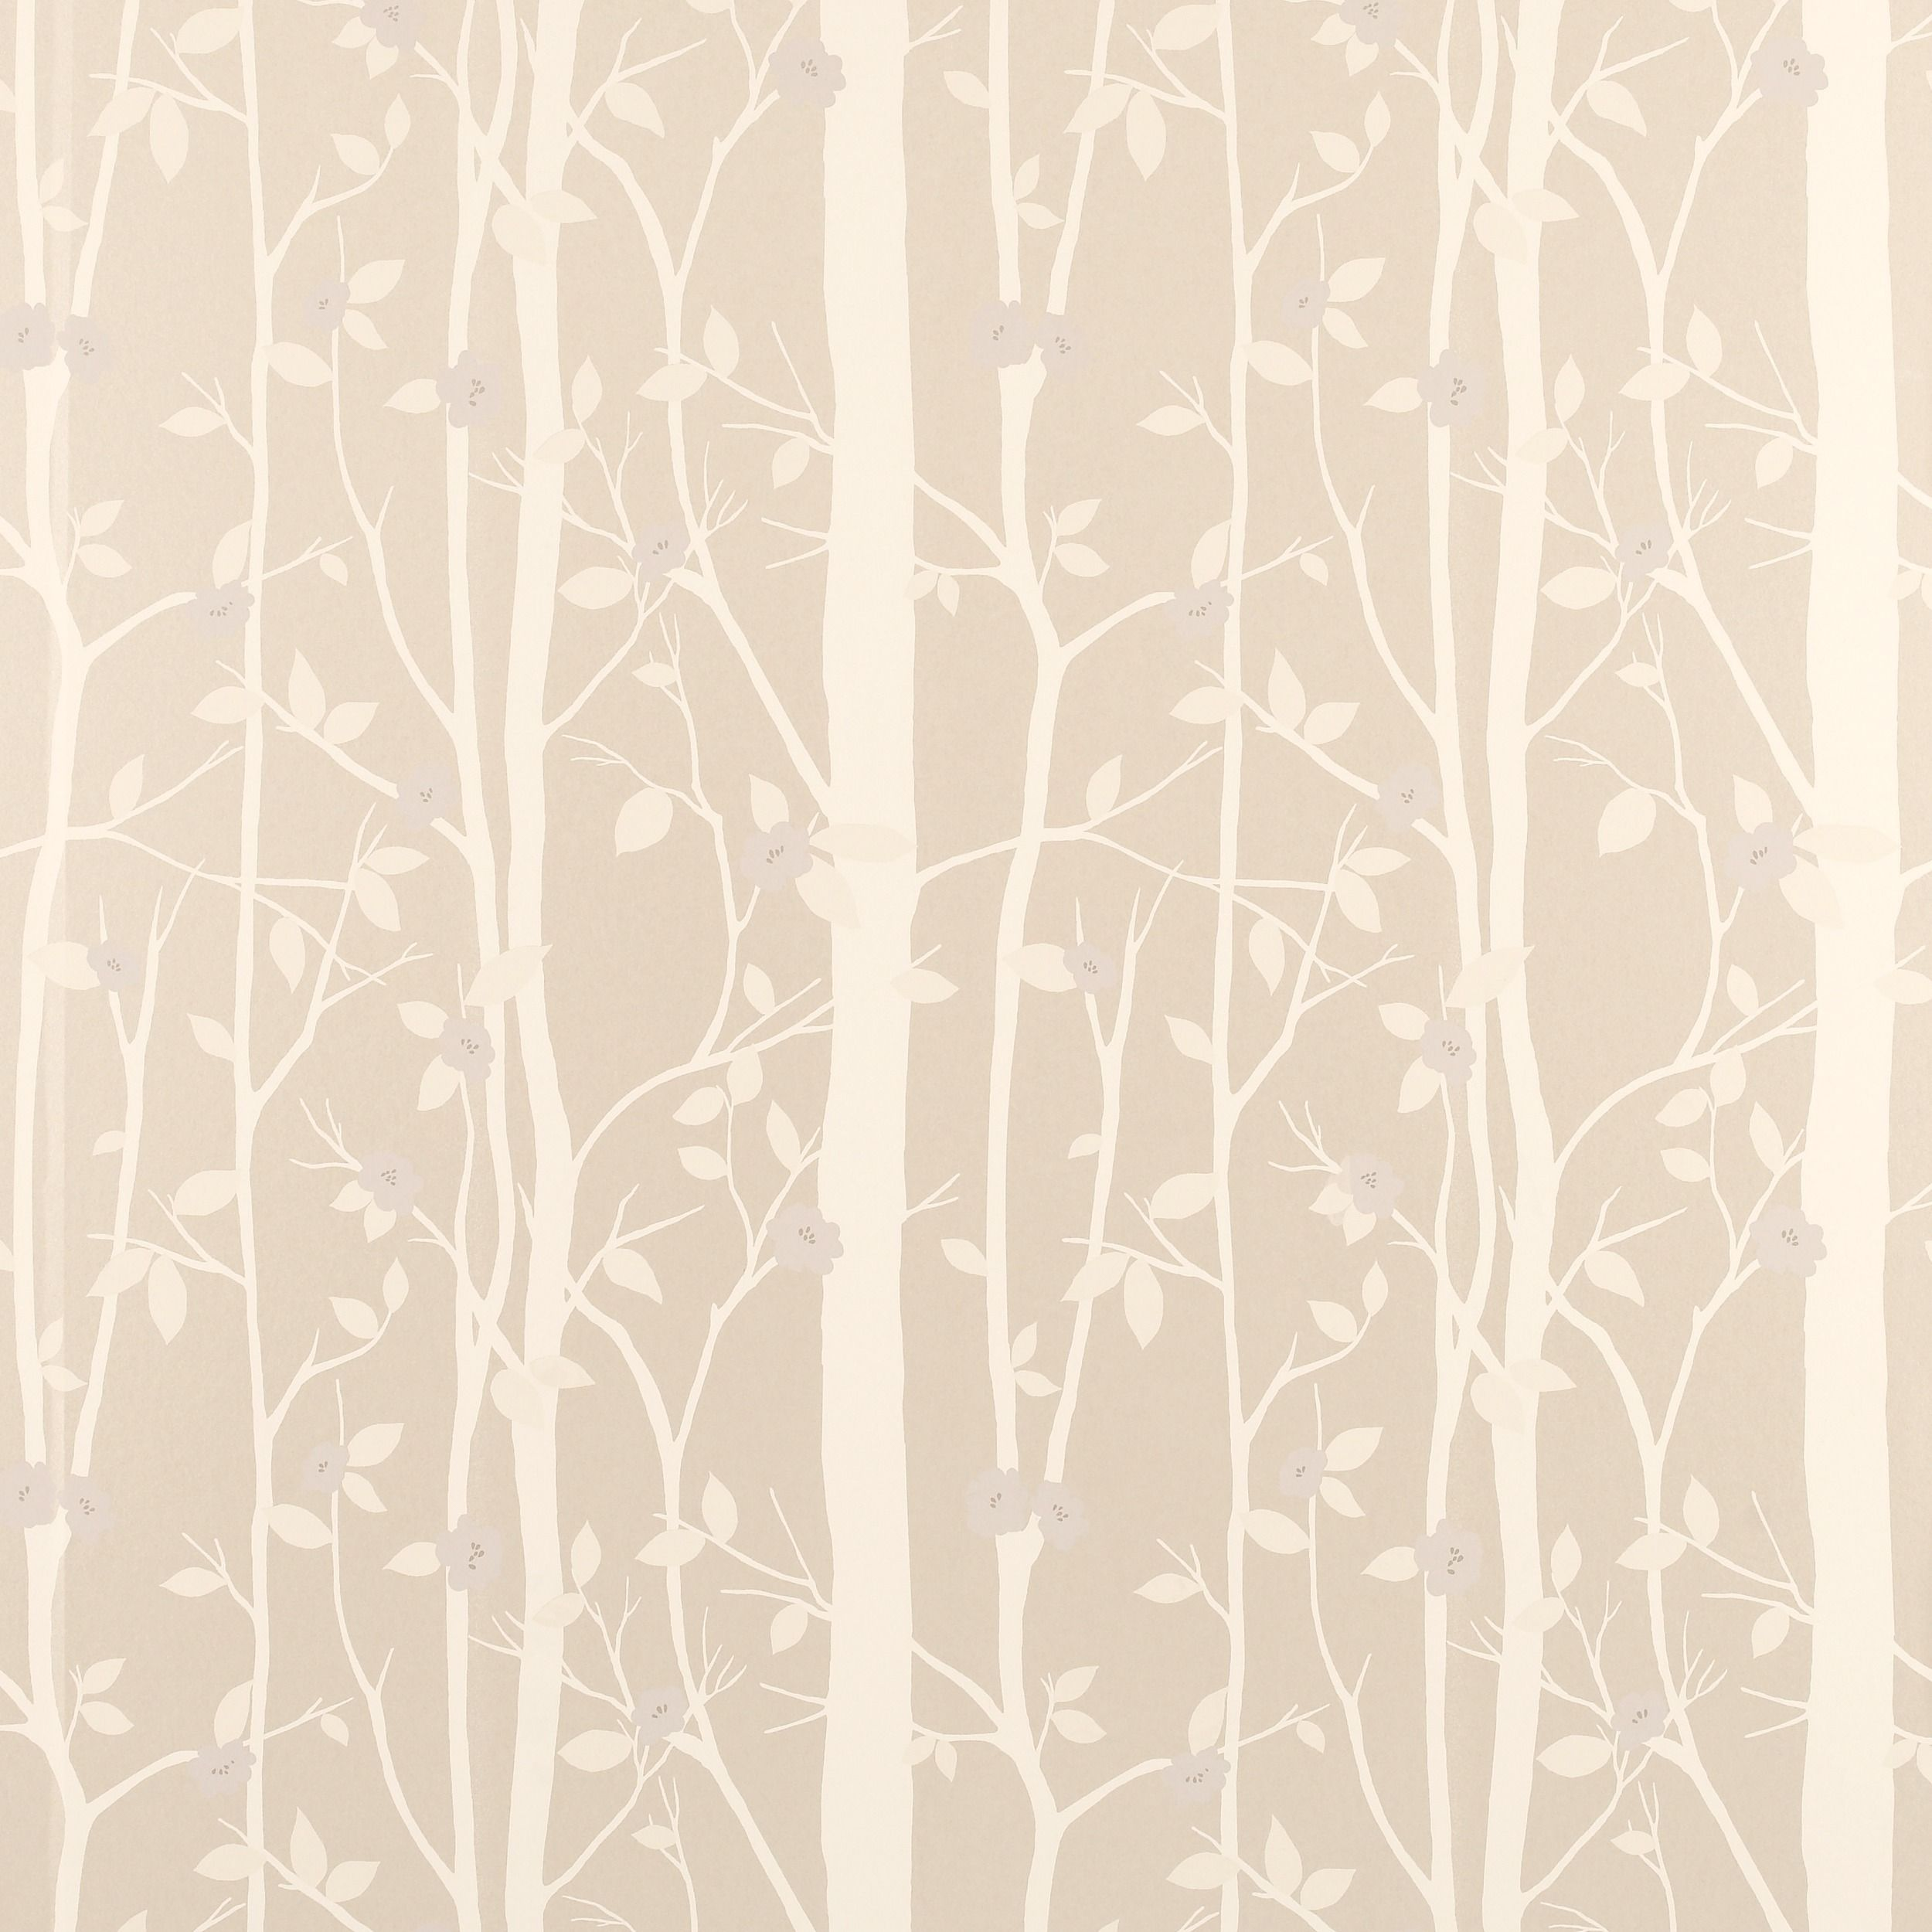 Laura Ashley Cottonwood Wallpaper Love The Natural Look Has A